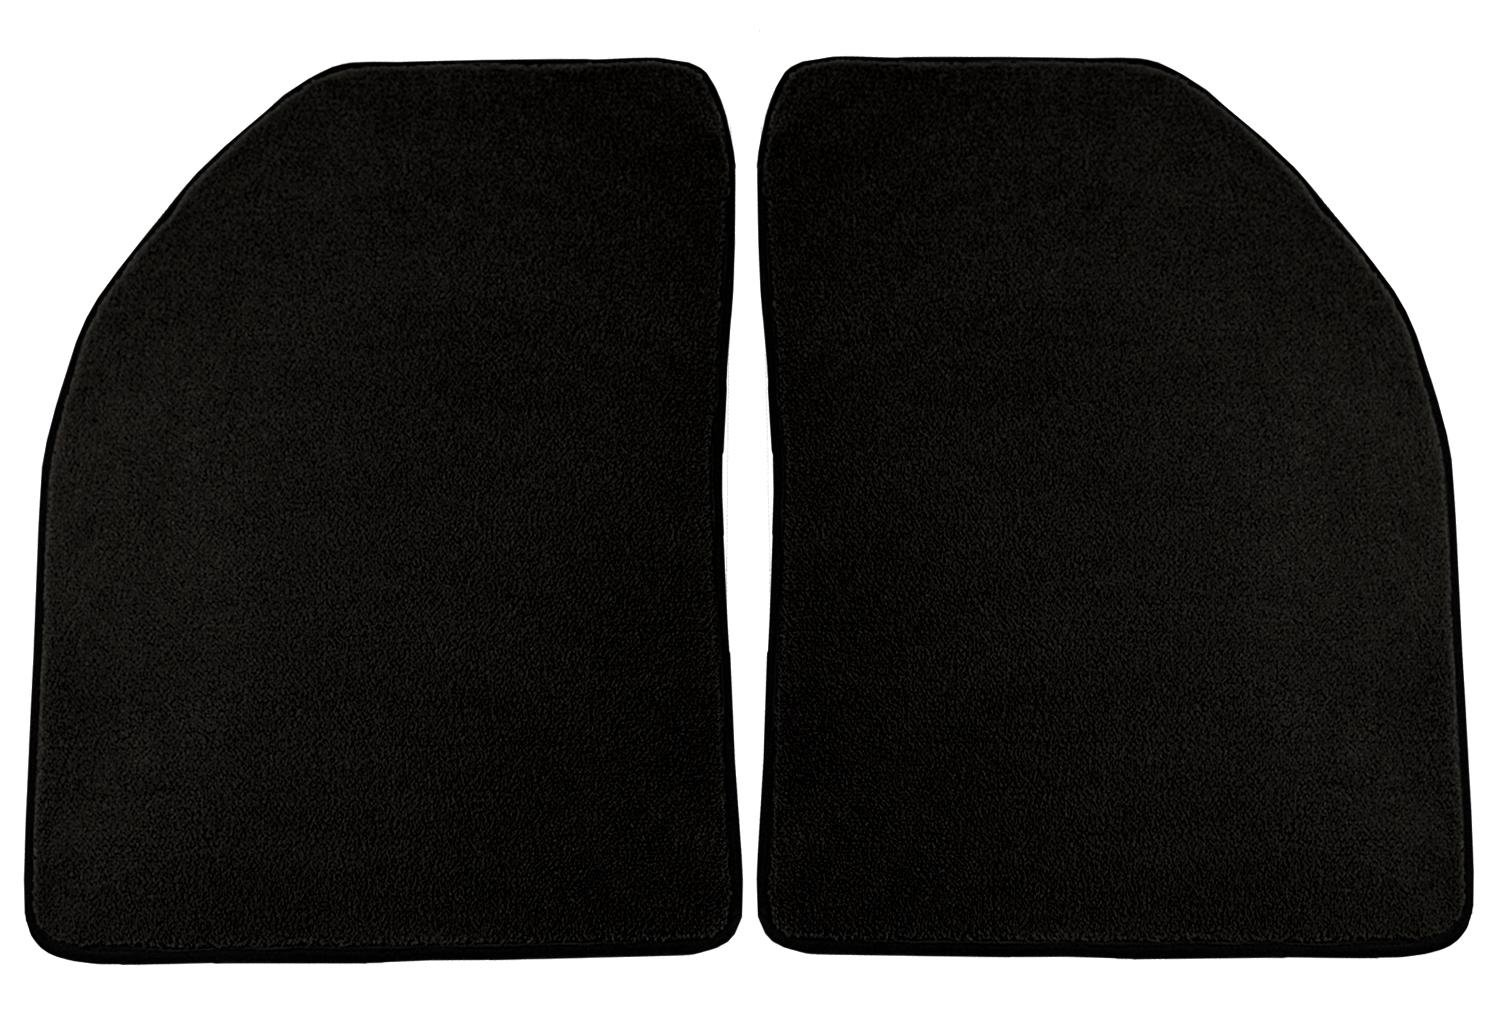 Coverking Custom Fit Front Floor Mats for Select Chevrolet Camaro Models Nylon Carpet Black